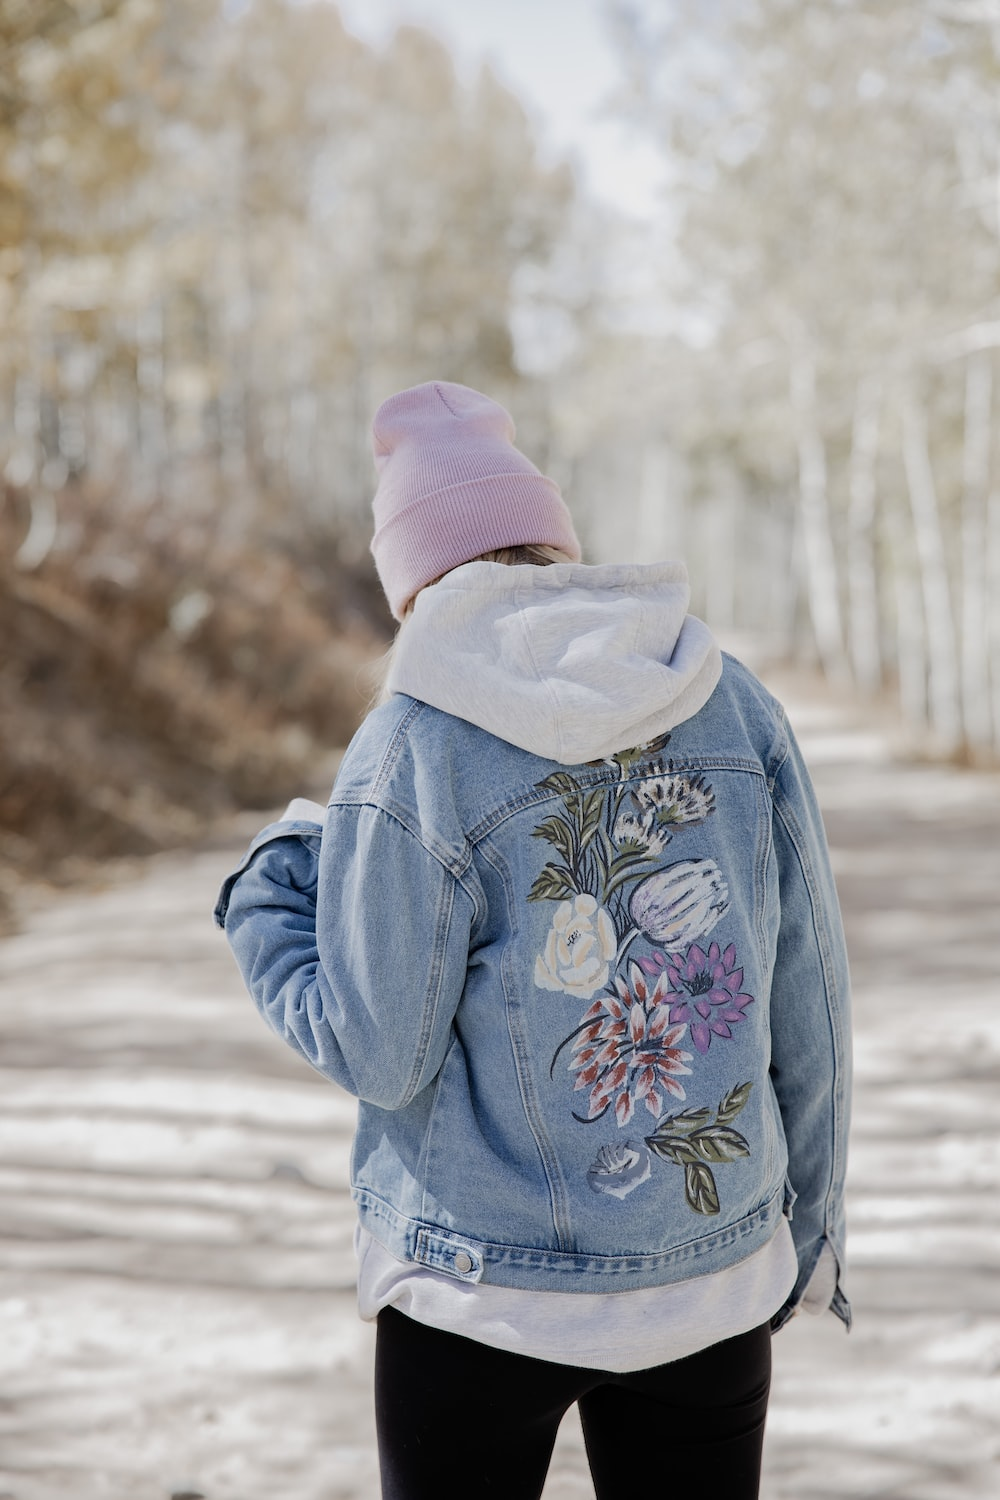 person in blue jacket and pink knit cap